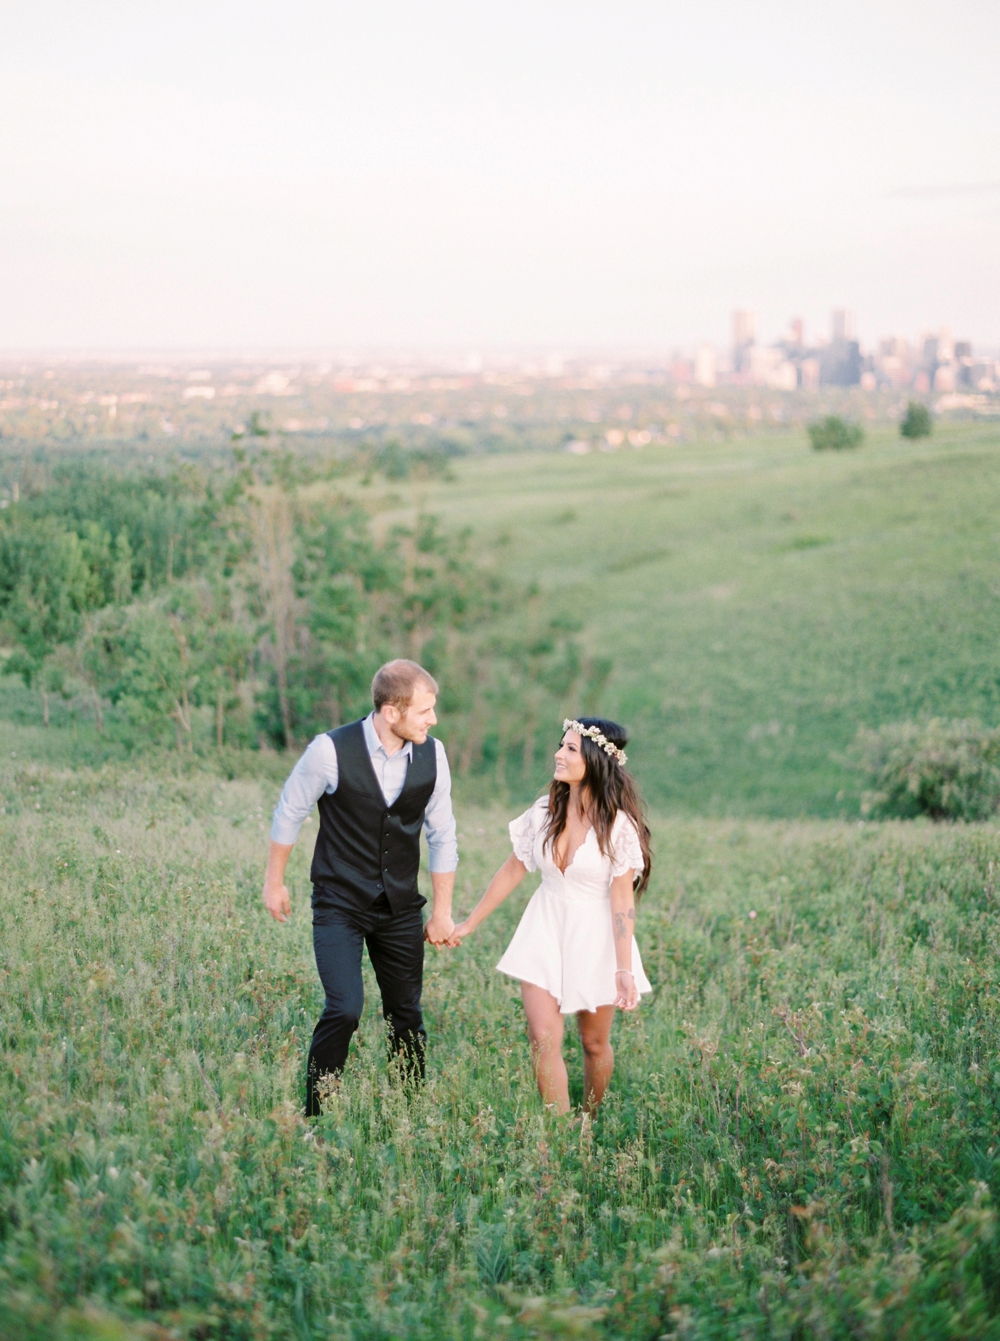 Calgary wedding photographers | calgary engagement photography | destination fine art film wedding photographer